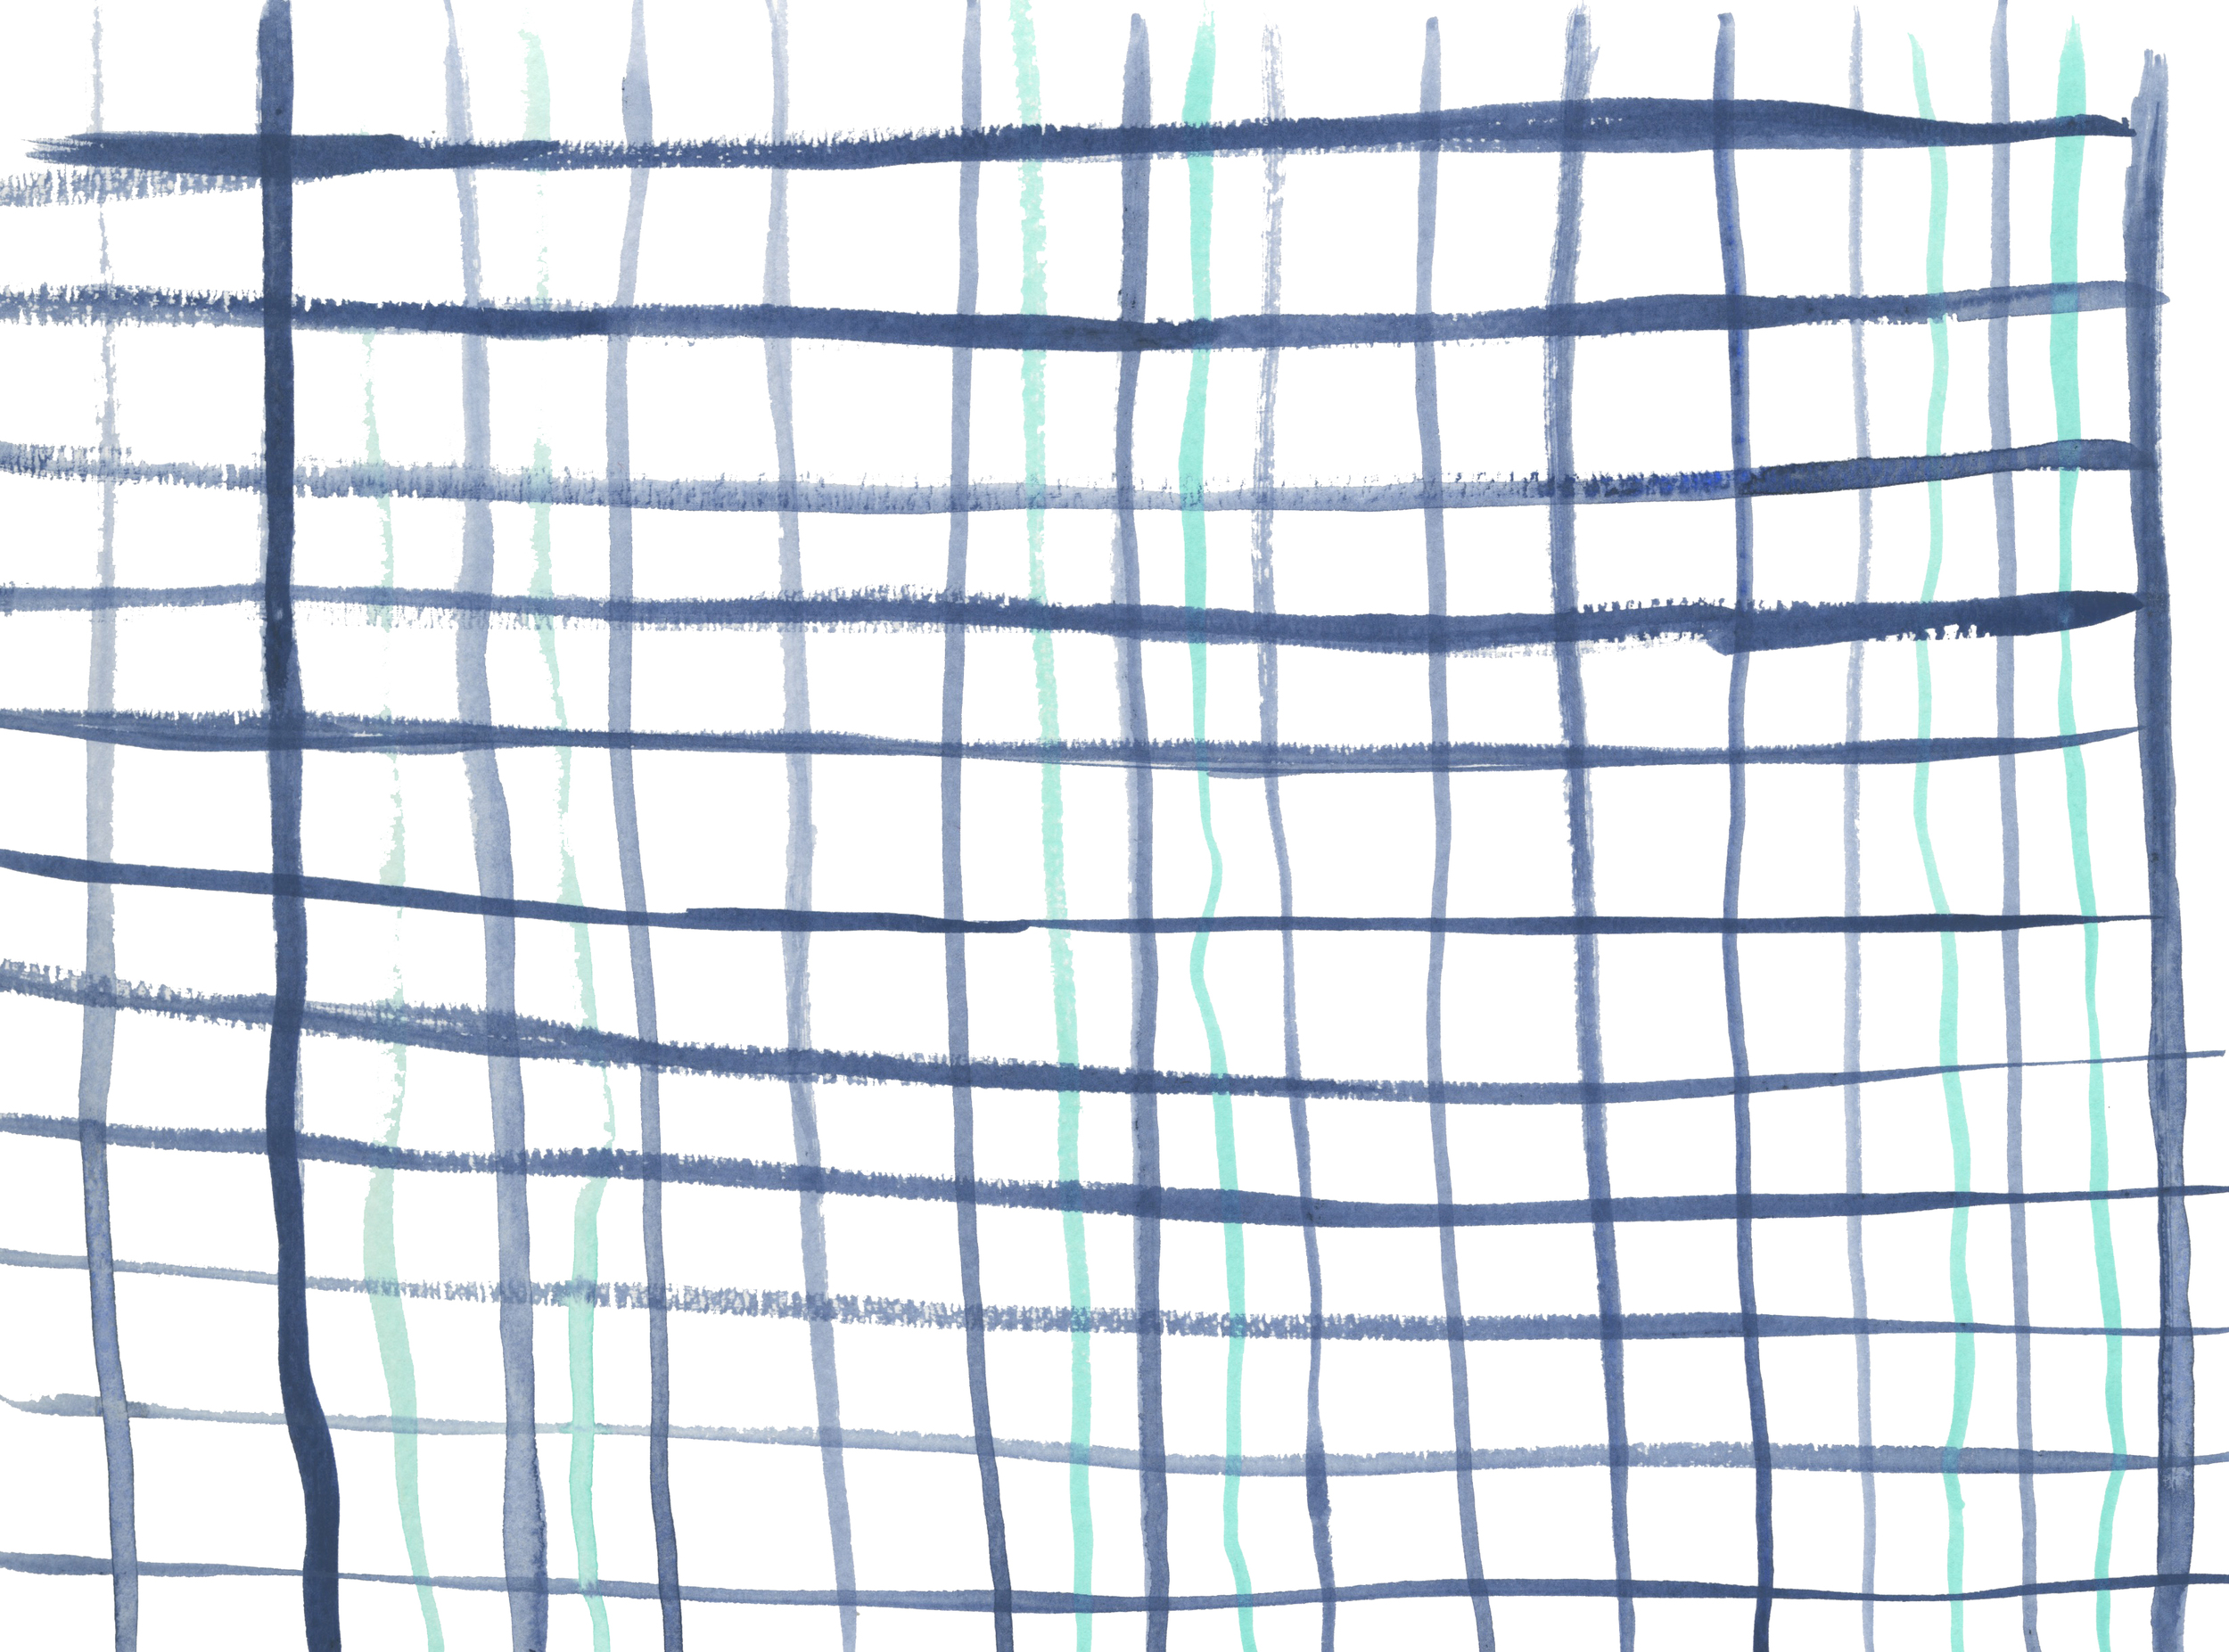 Thesis Background SCAN 3_Grid with White.jpg